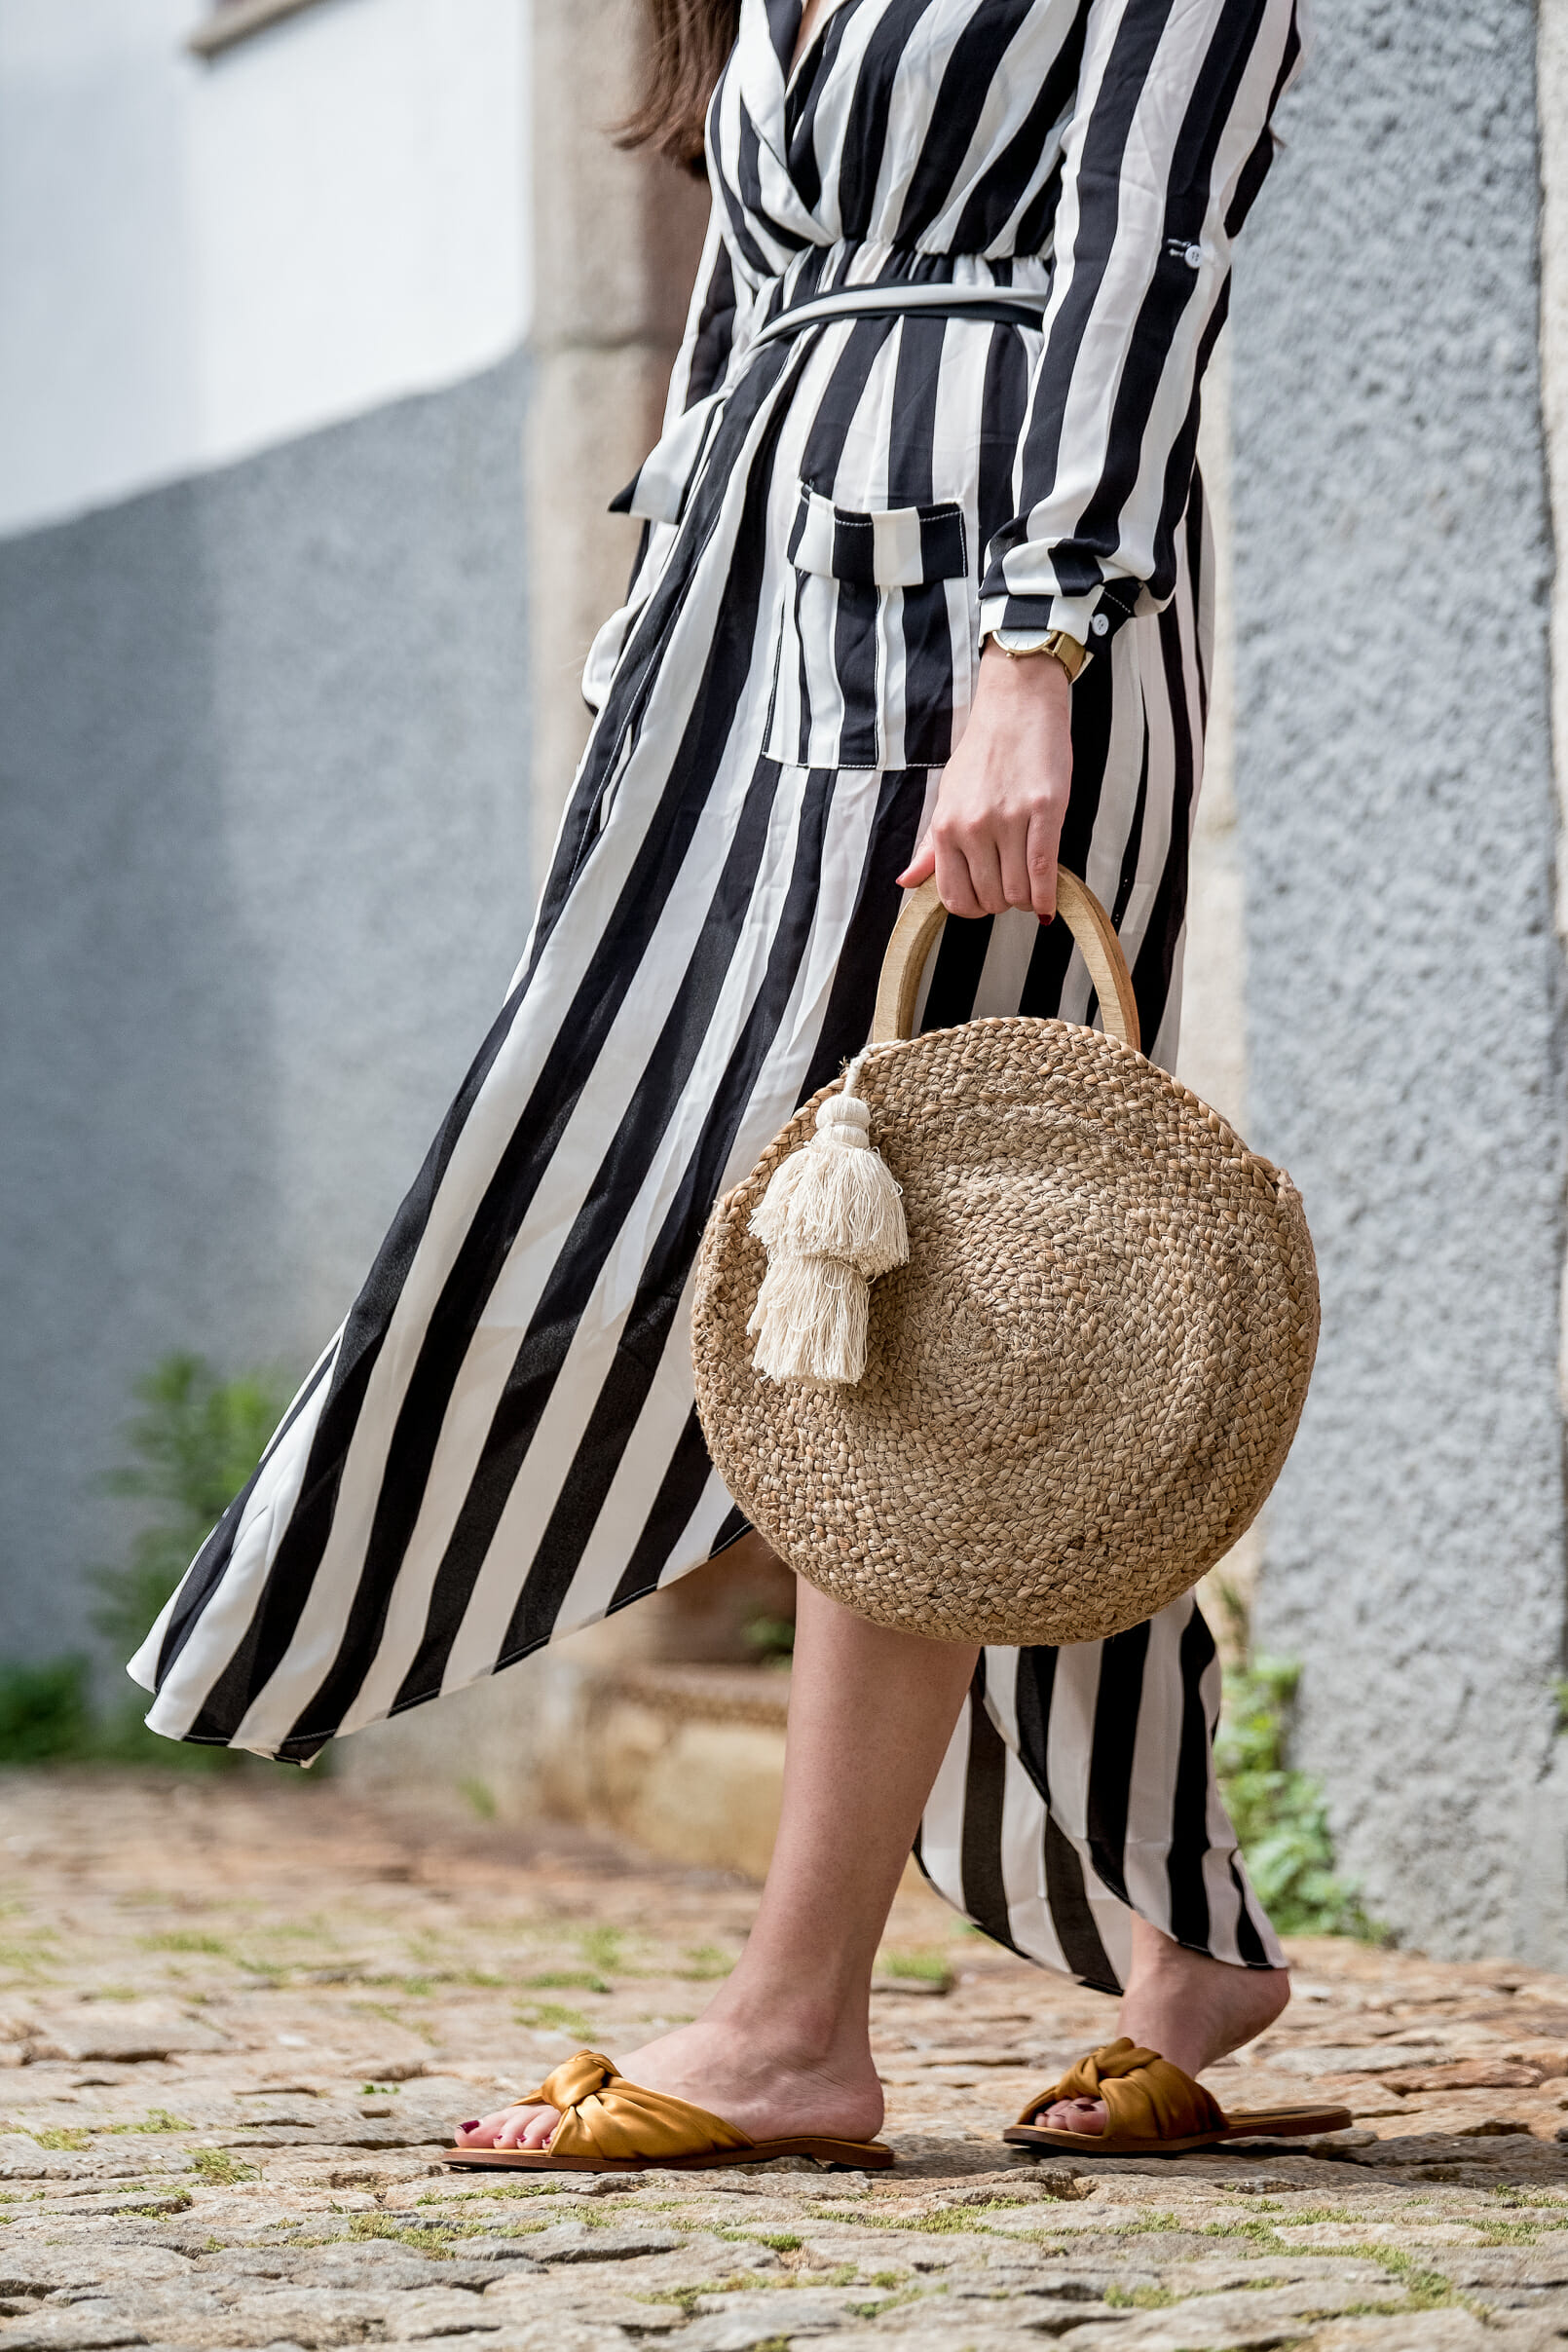 Le Fashionaire stripes dark blue white maxi shein dress satin dark yellow slides straw round wood zara bag 0510 EN stripes dark blue white maxi shein dress satin dark yellow slides straw round wood zara bag 0510 EN